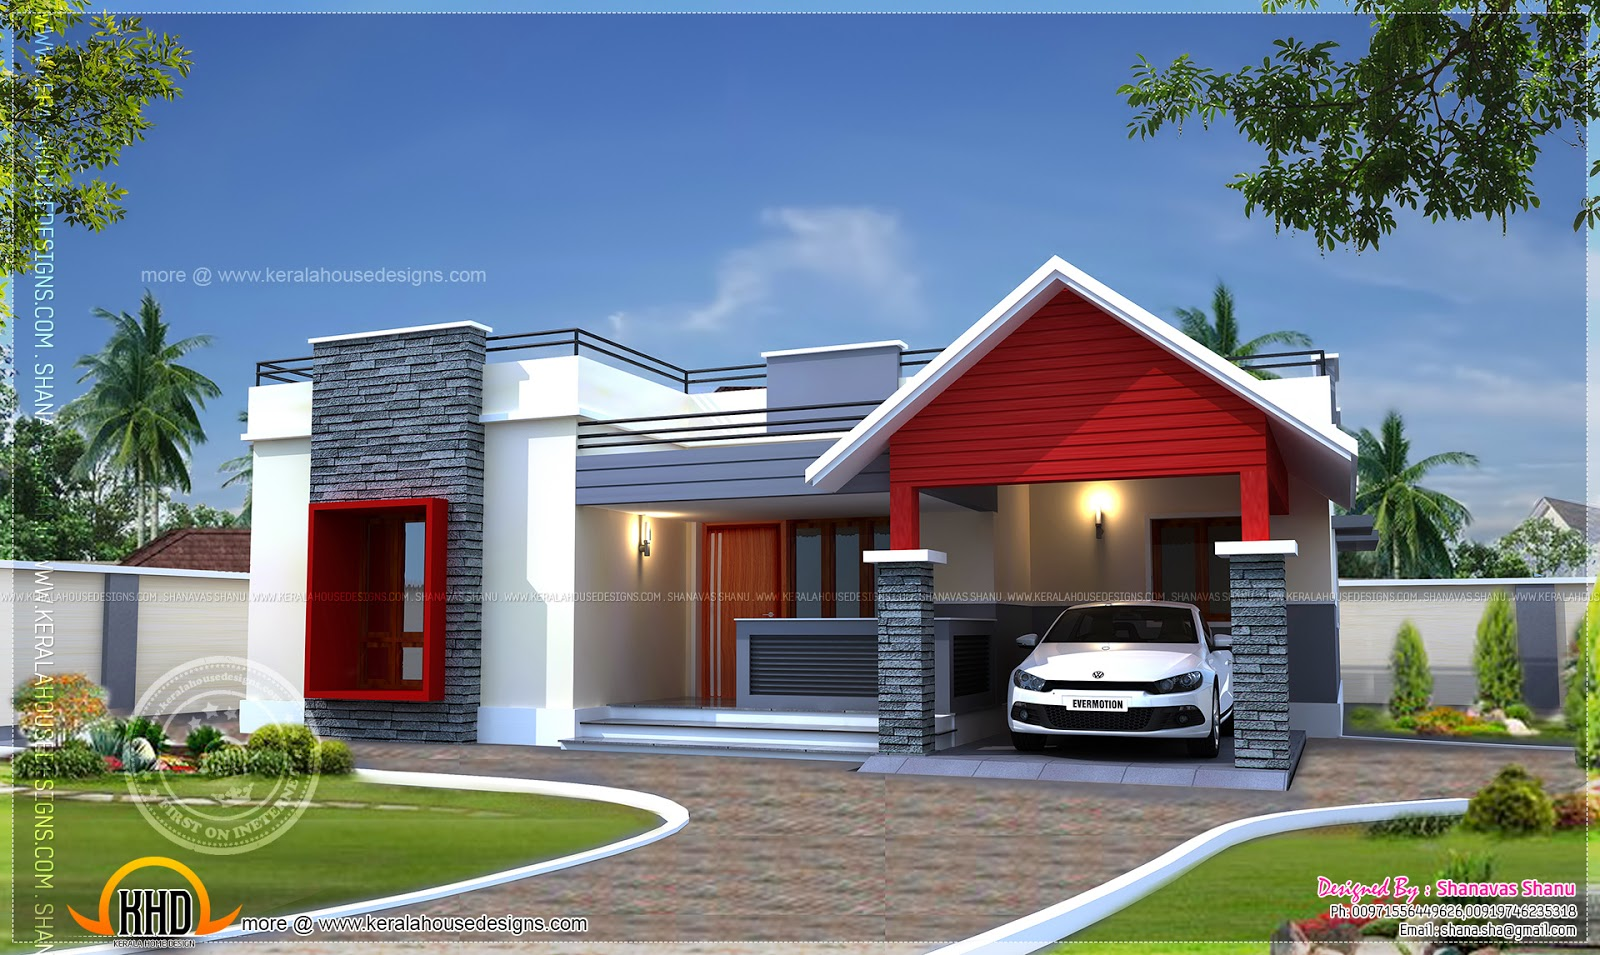 Single floor home plan in 1400 square feet kerala home for Ground floor house design